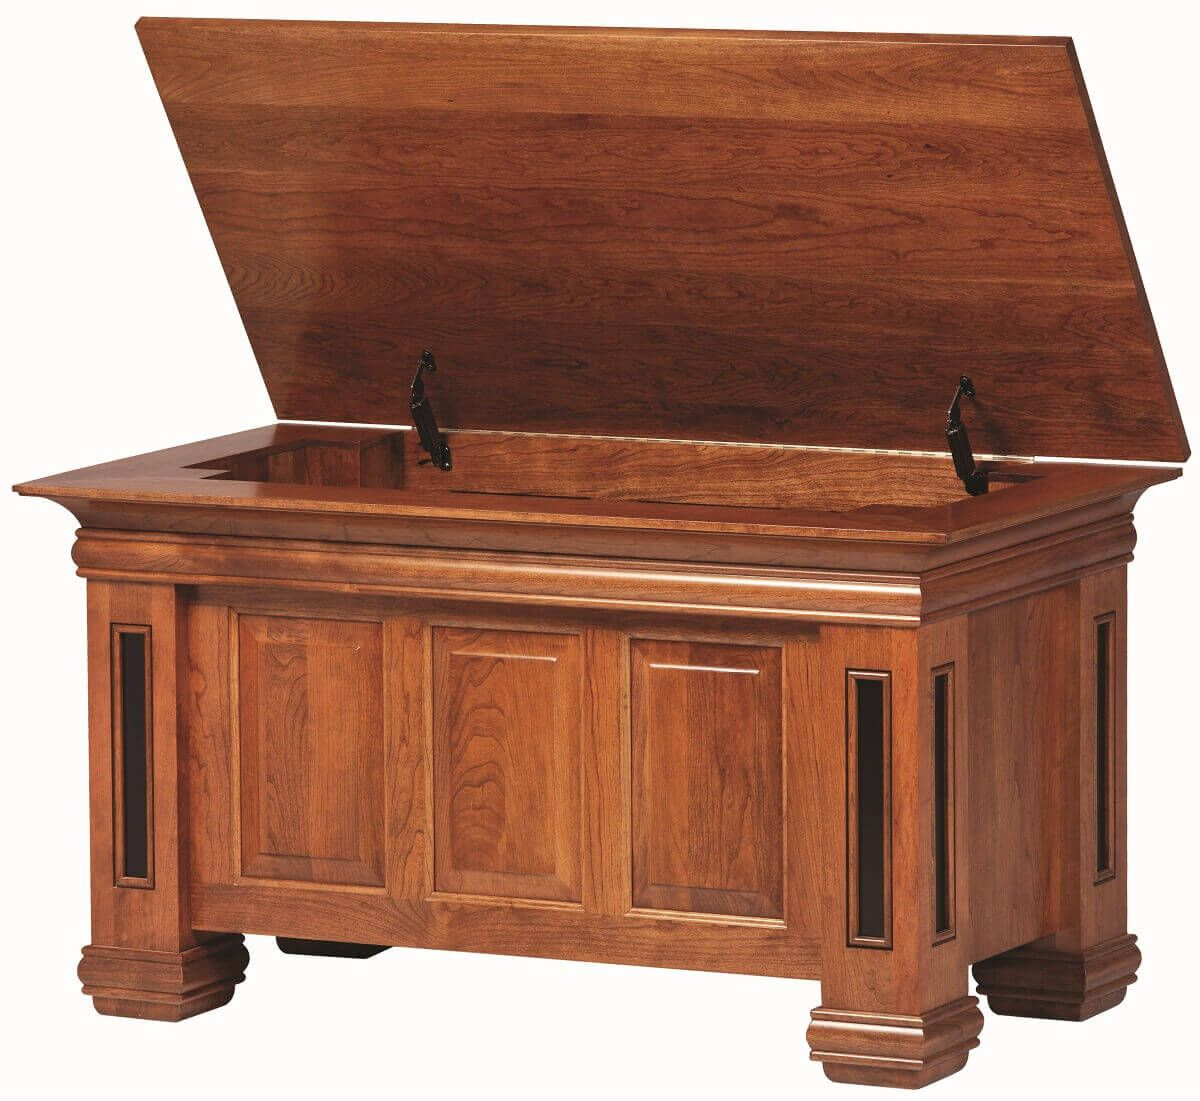 Chain Lakes Blanket Chest Open